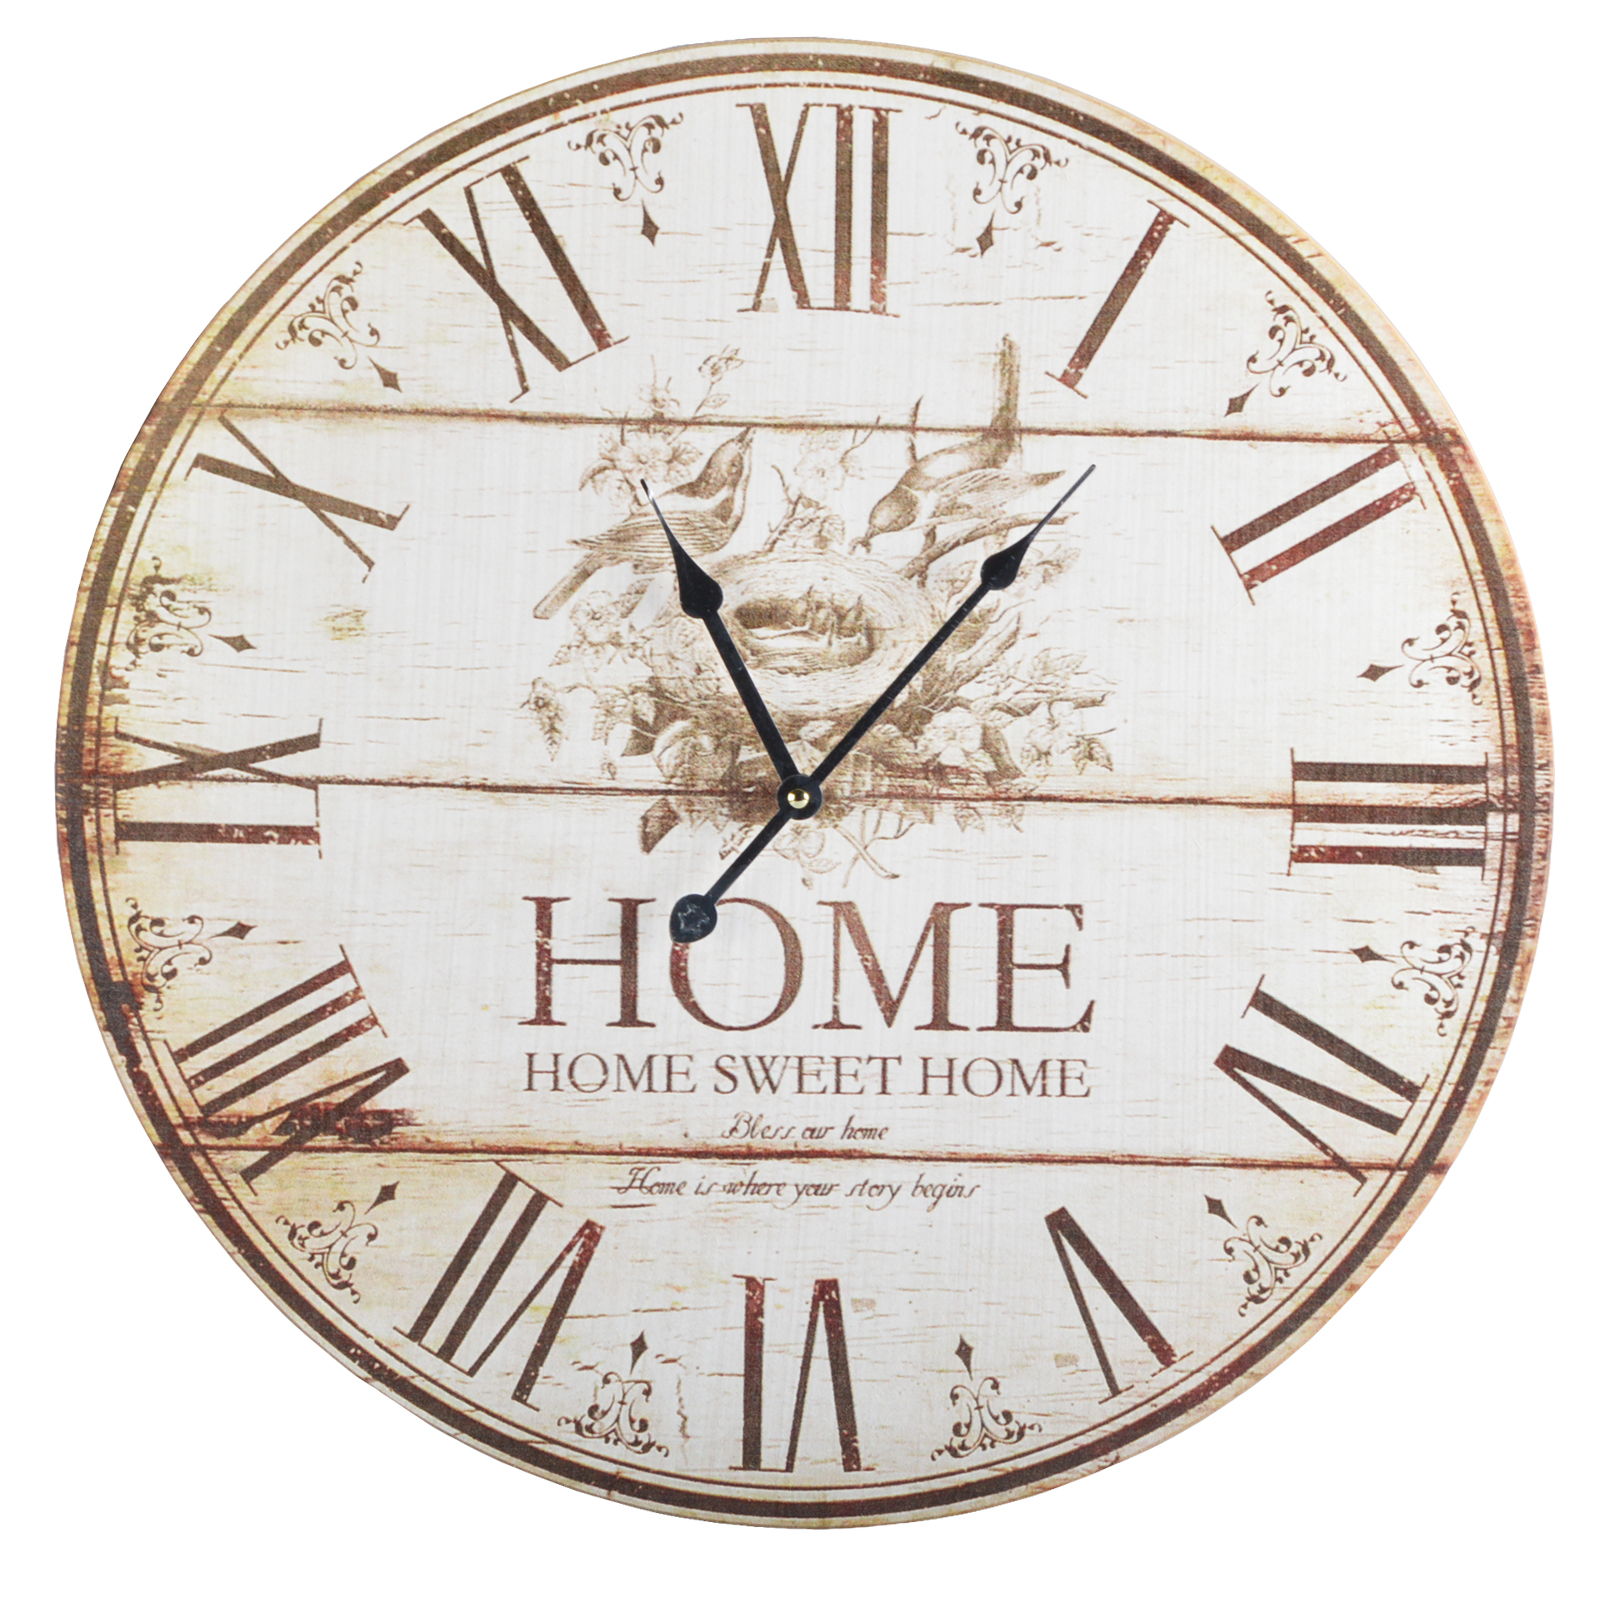 53 cm wanduhr uhr wohnzimmer k chenuhr r hmische zahlen vintage shabby chic. Black Bedroom Furniture Sets. Home Design Ideas